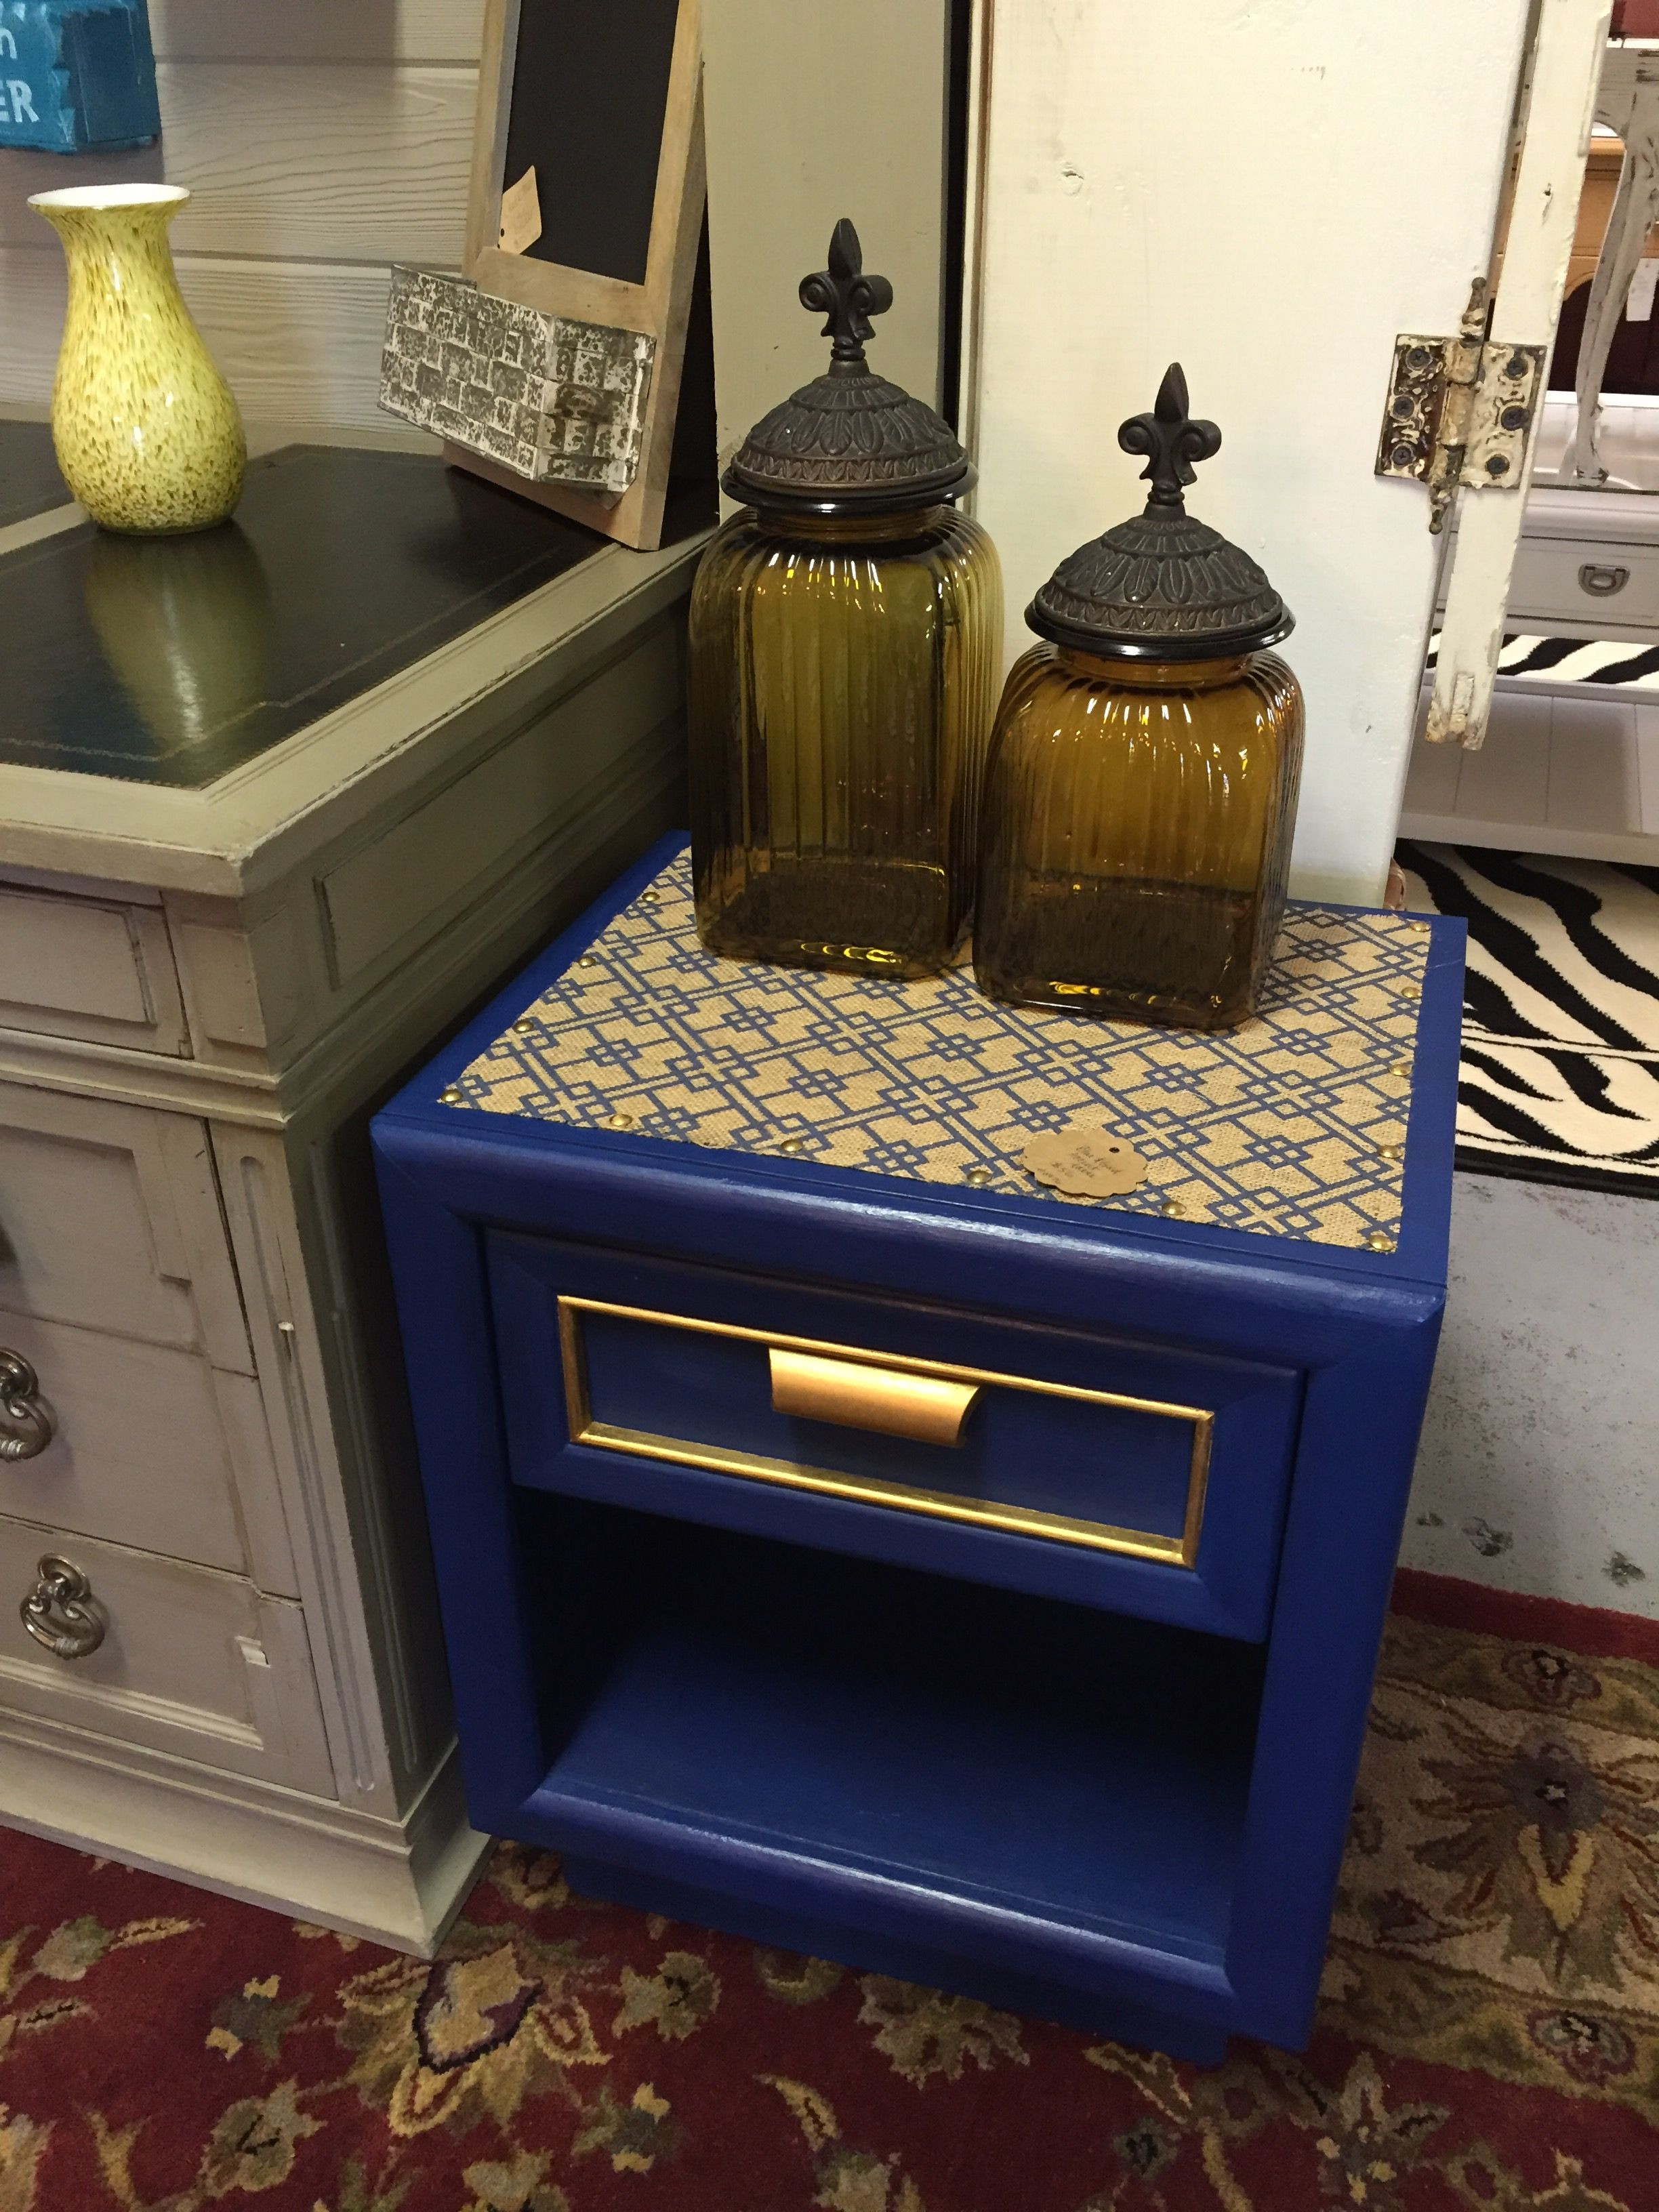 floor vase stands of end table night stand painted in amy howard american dream one step with regard to end table night stand painted in amy howard american dream one step paint with